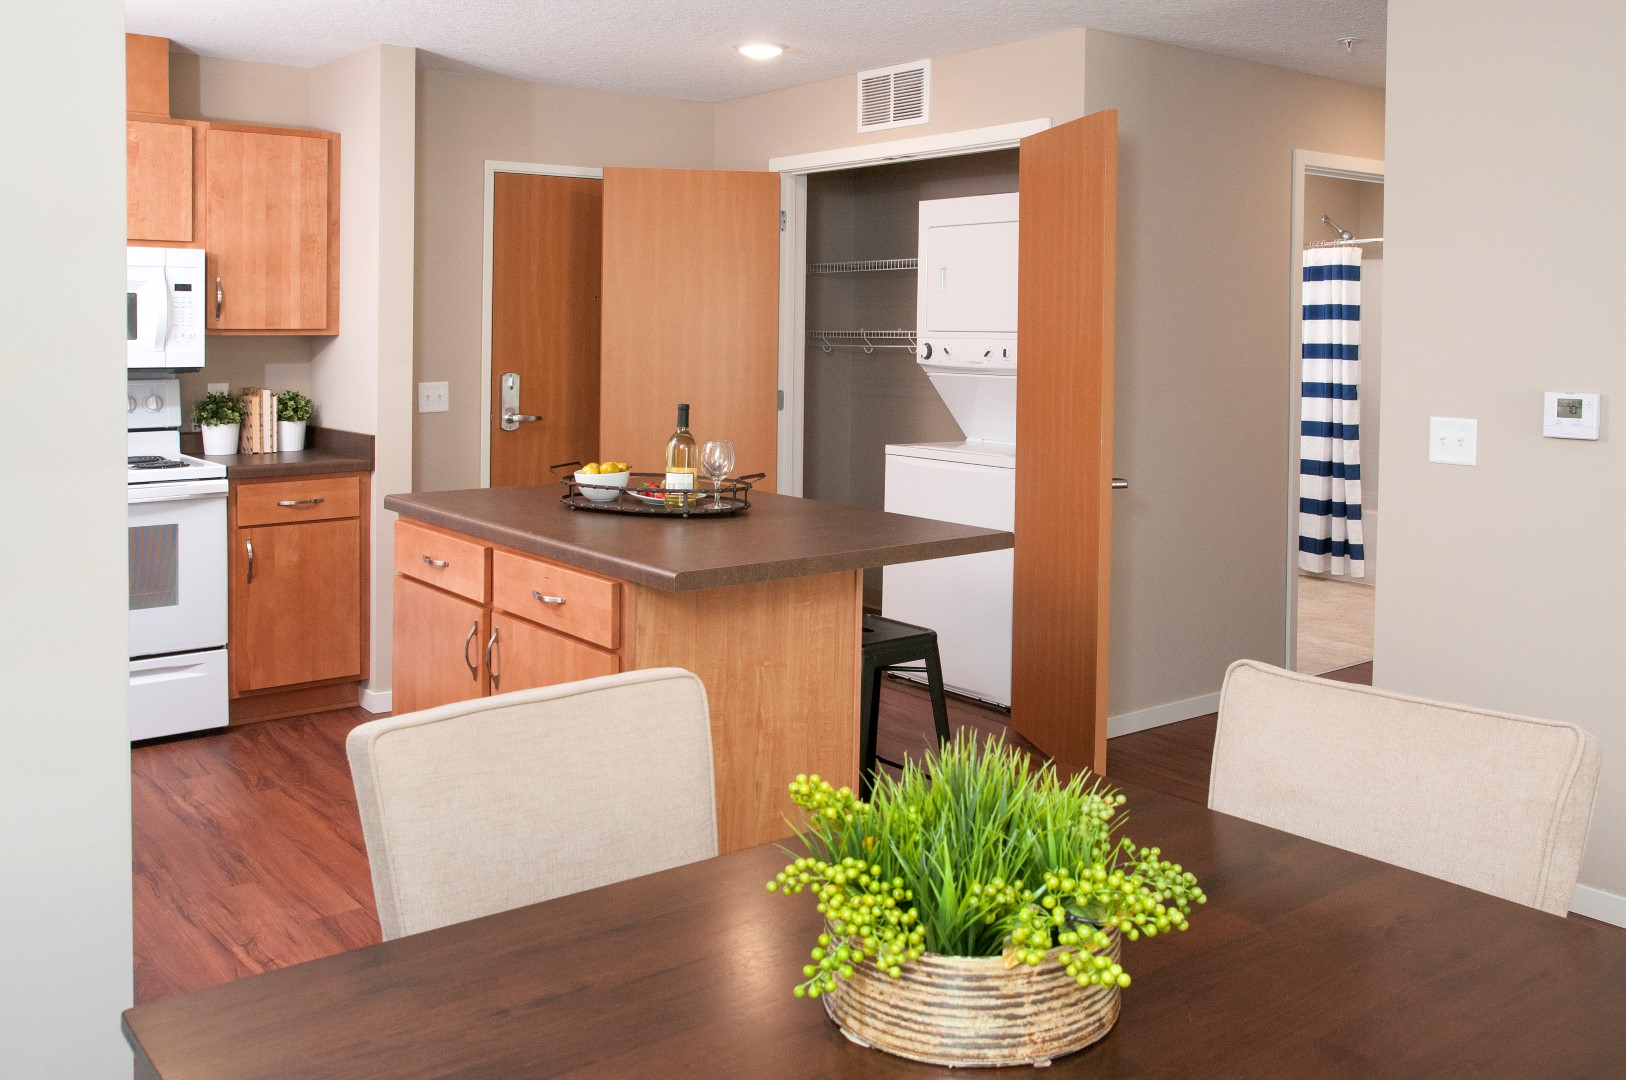 Pike Lake Marsh Apartments in Prior Lake, MN Model Kitchen Affordable